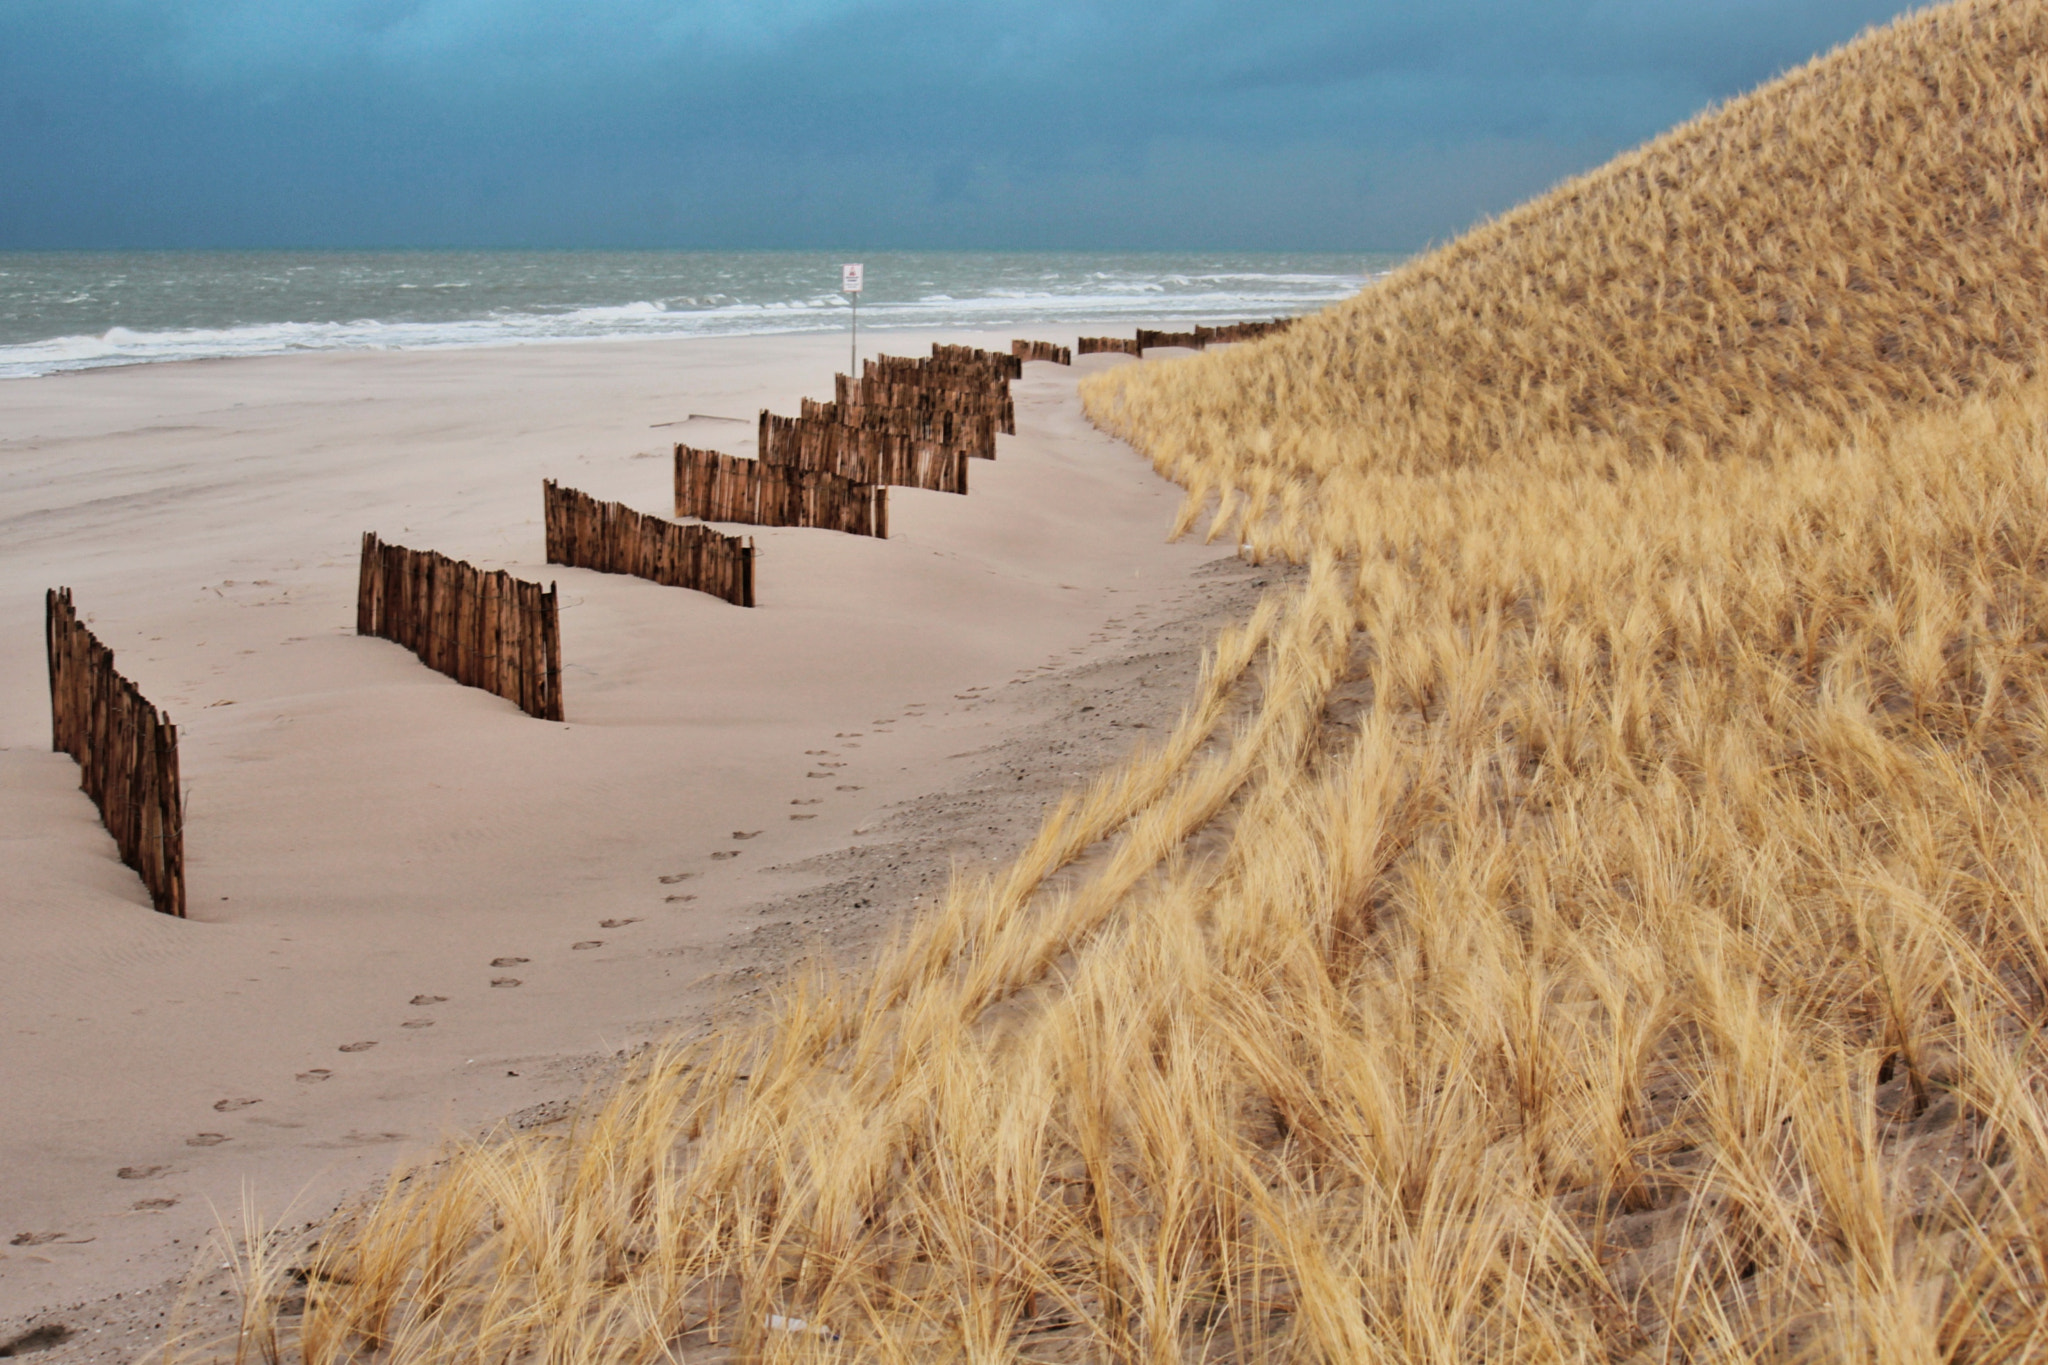 Photograph Beach on the 2e Maasvlakte (the Netherlands) by Joost Lagerweij on 500px